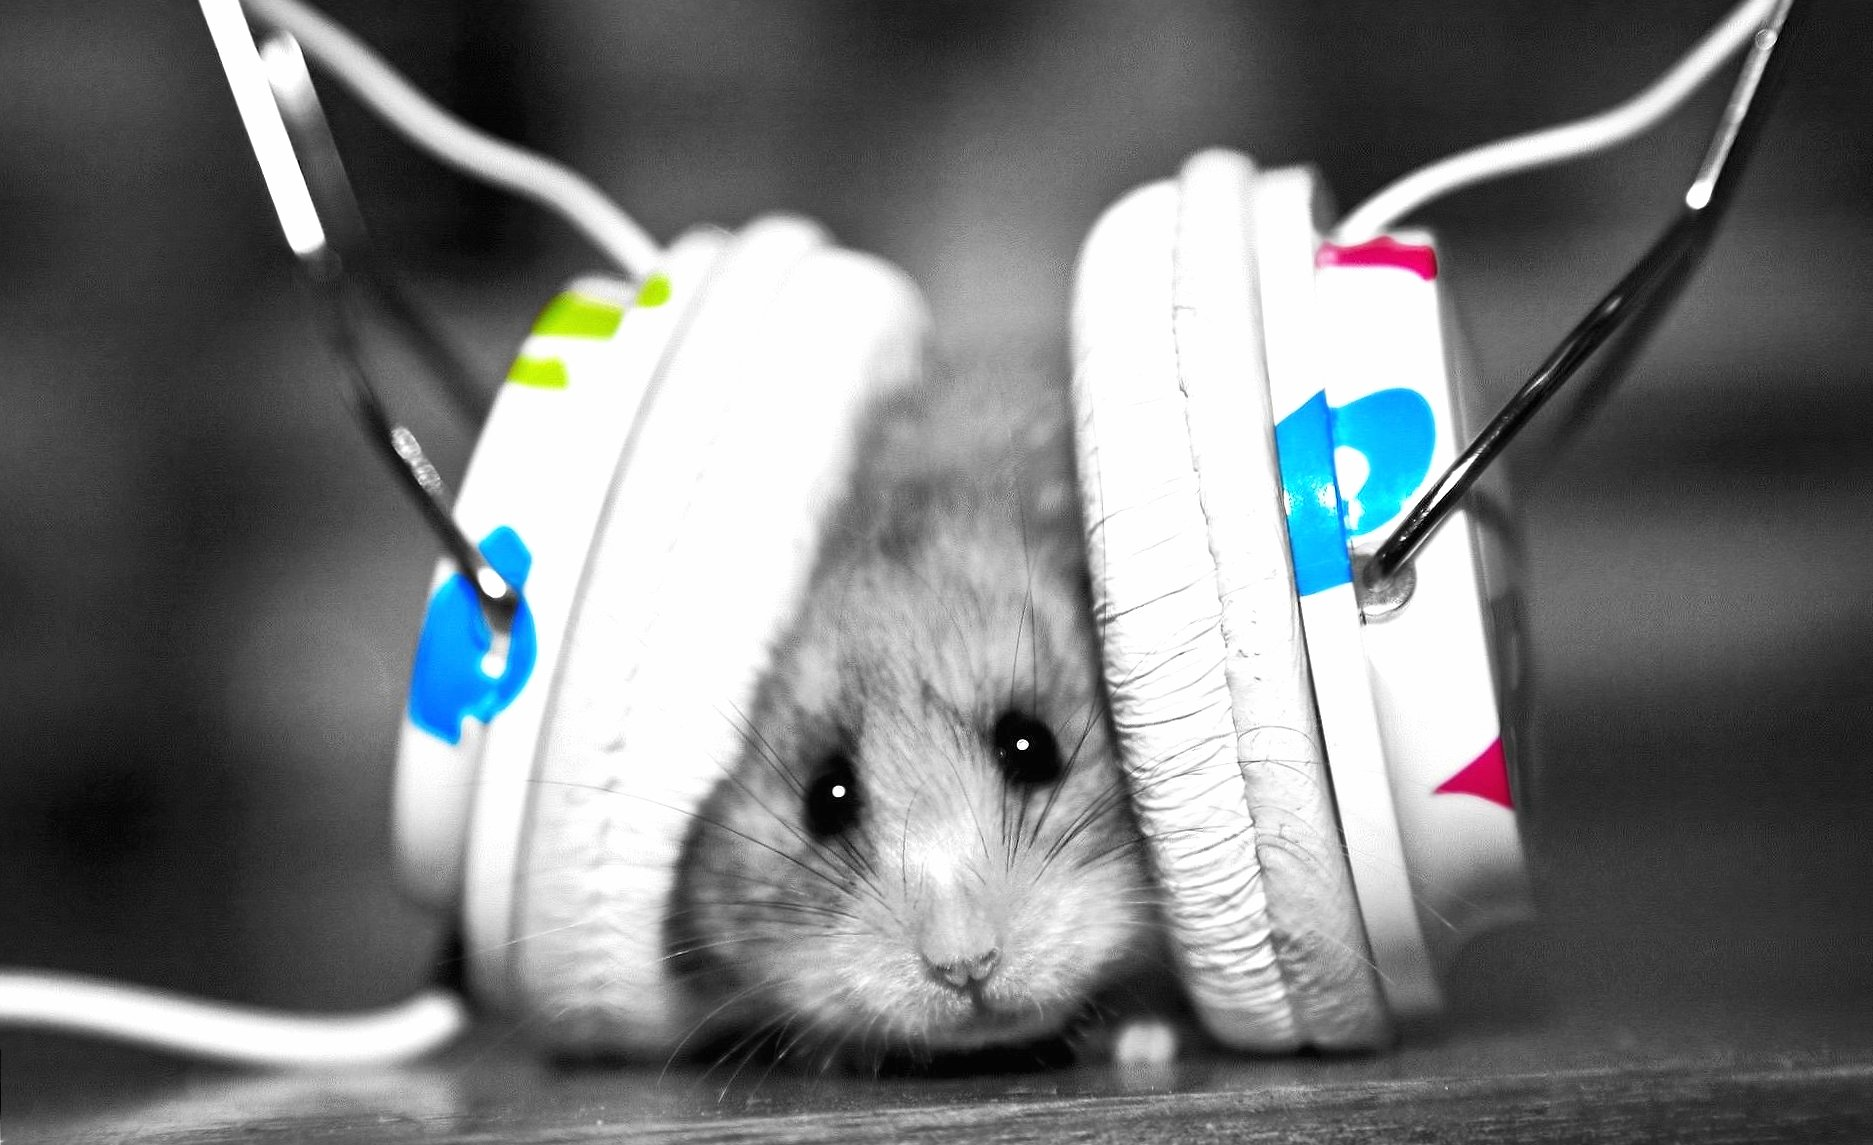 Weird music mouse wallpapers HD quality